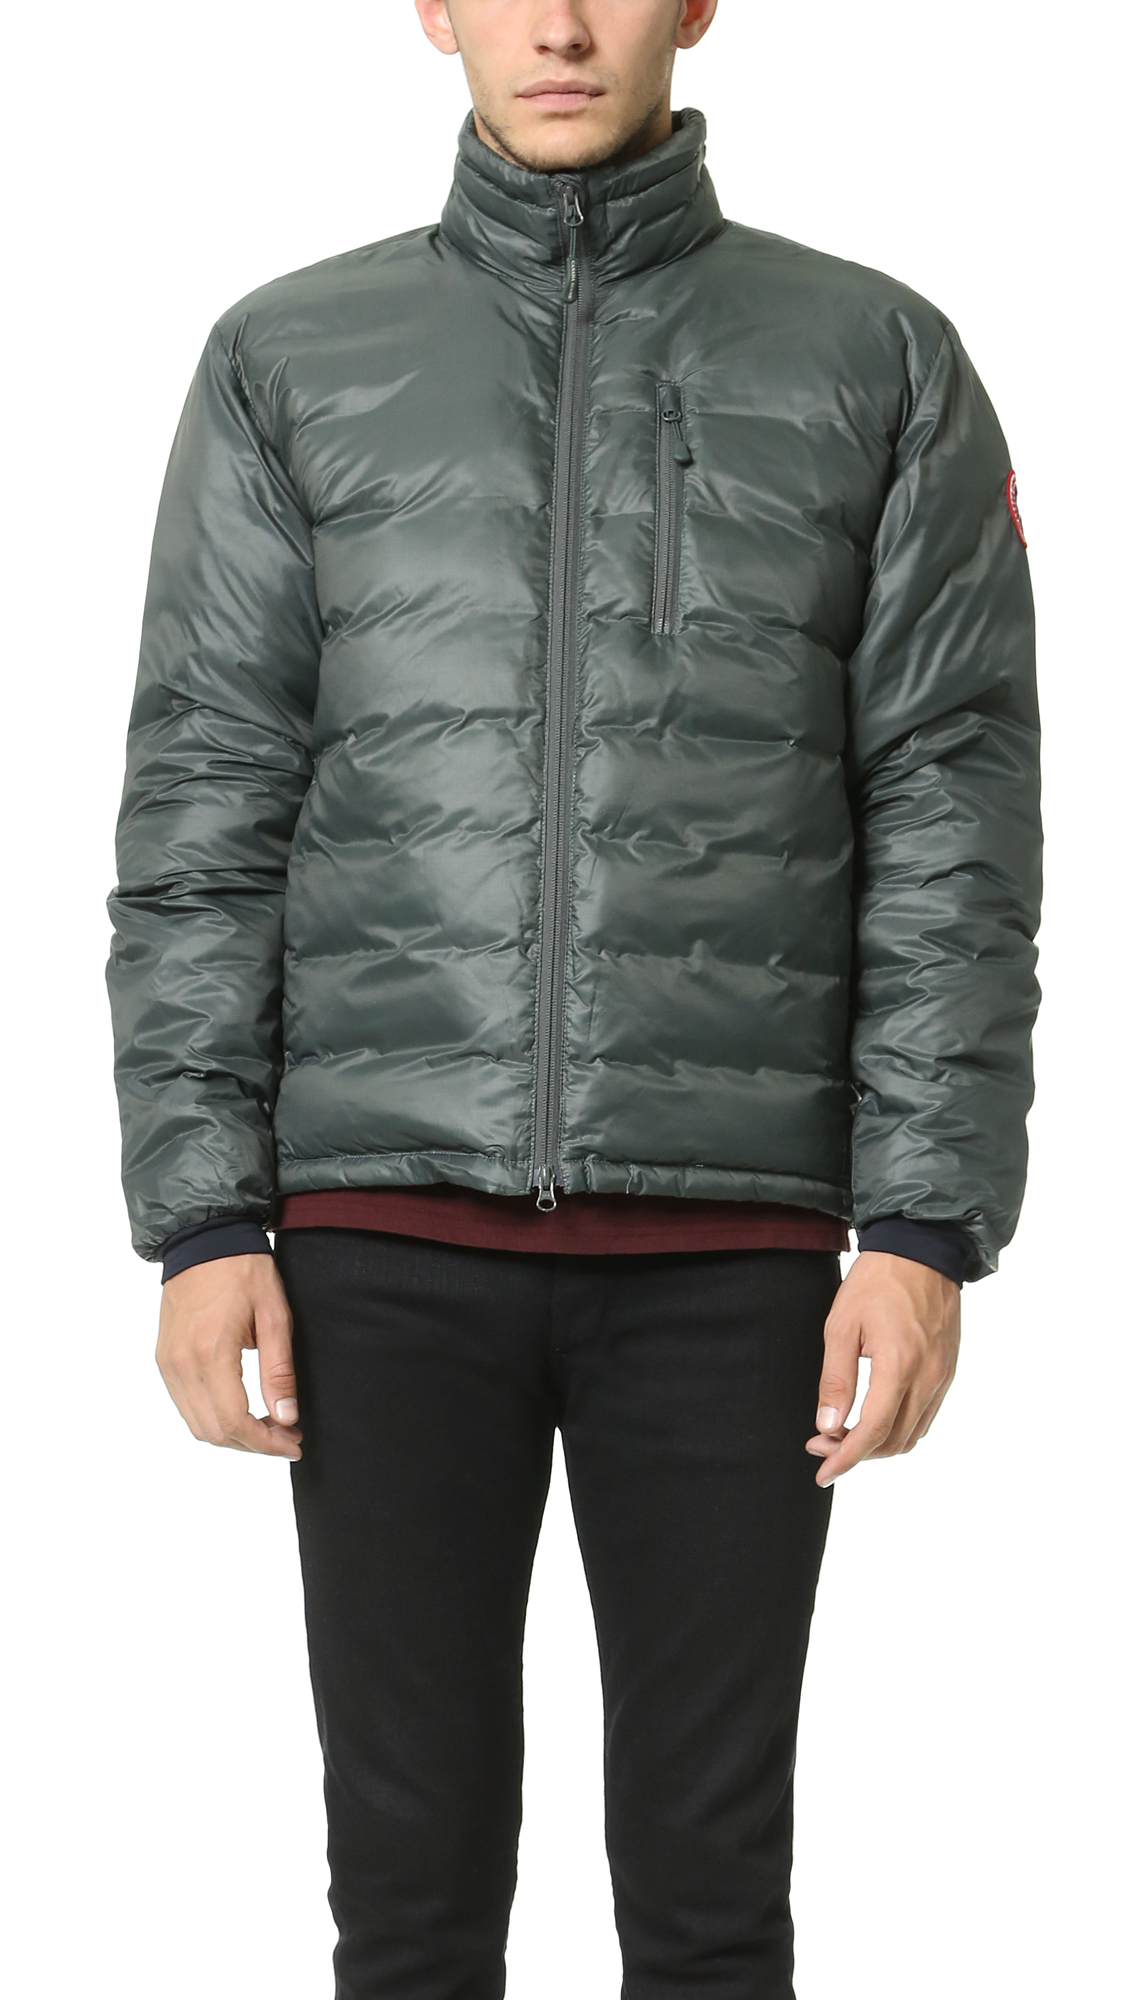 Canada Goose chateau parka replica price - Canada goose Lodge Jacket in Gray for Men (Slate) | Lyst